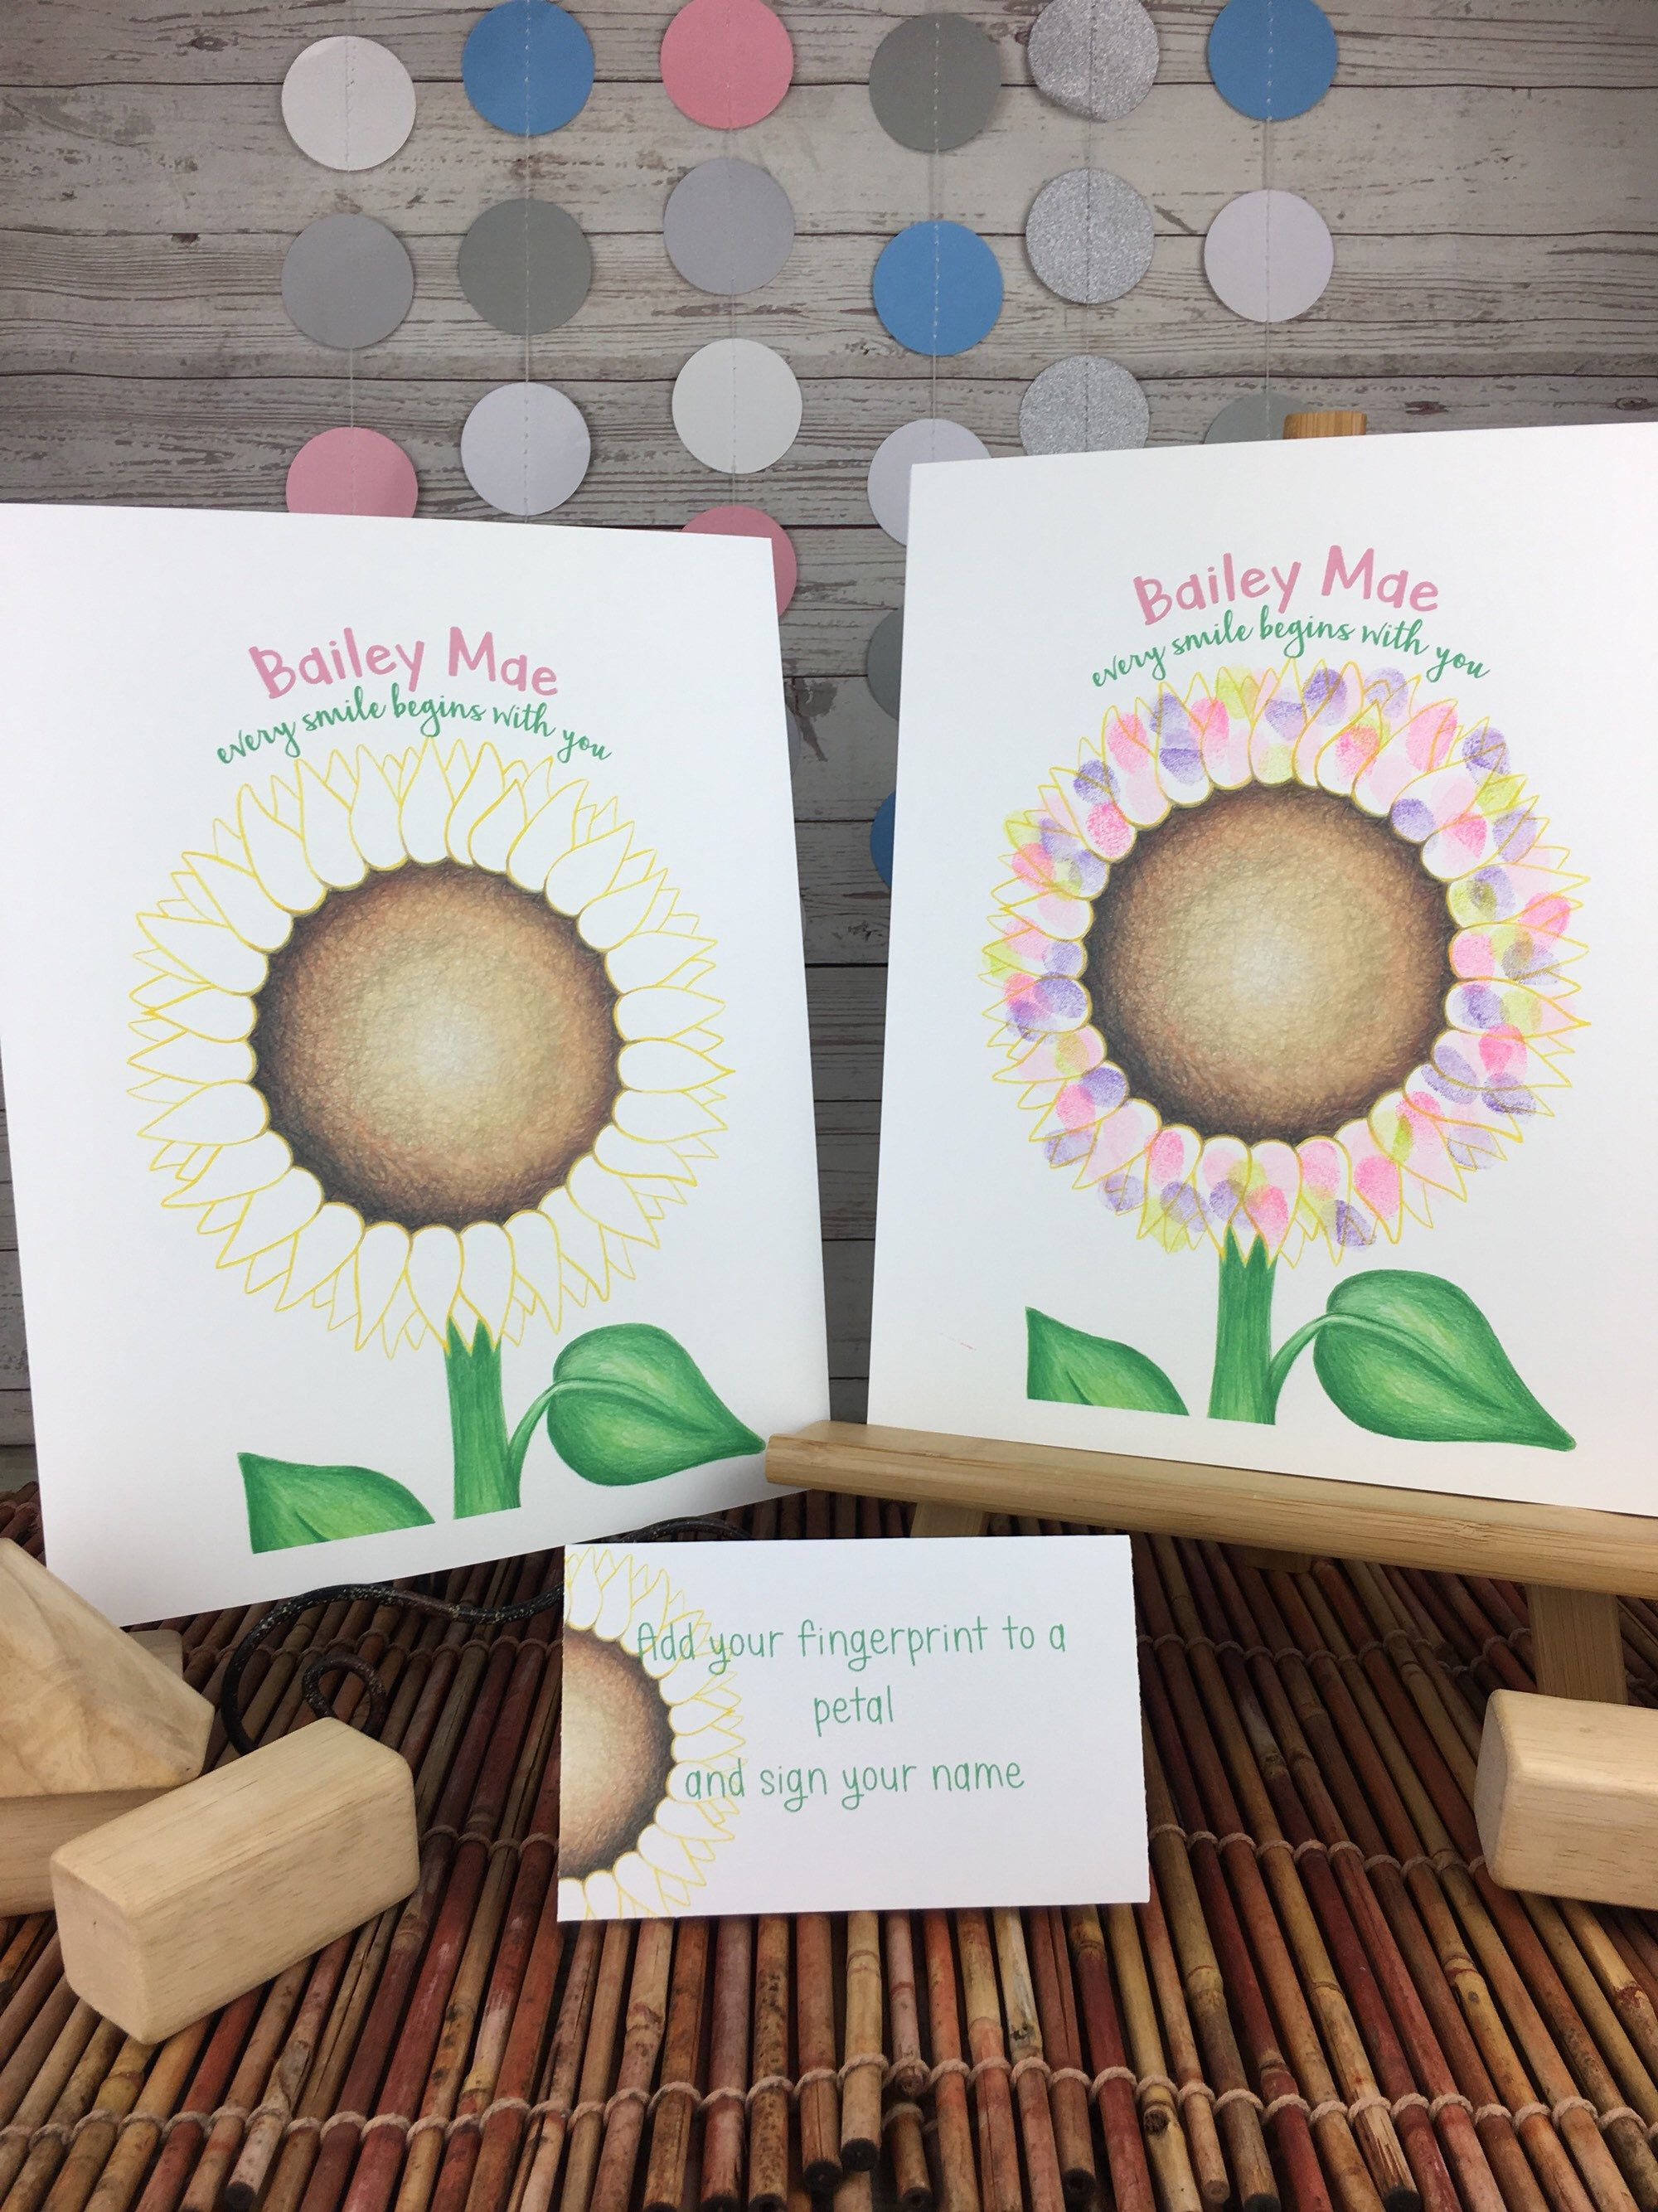 Best Baby Shower Idea Have Guests Add Their Fingerprints And